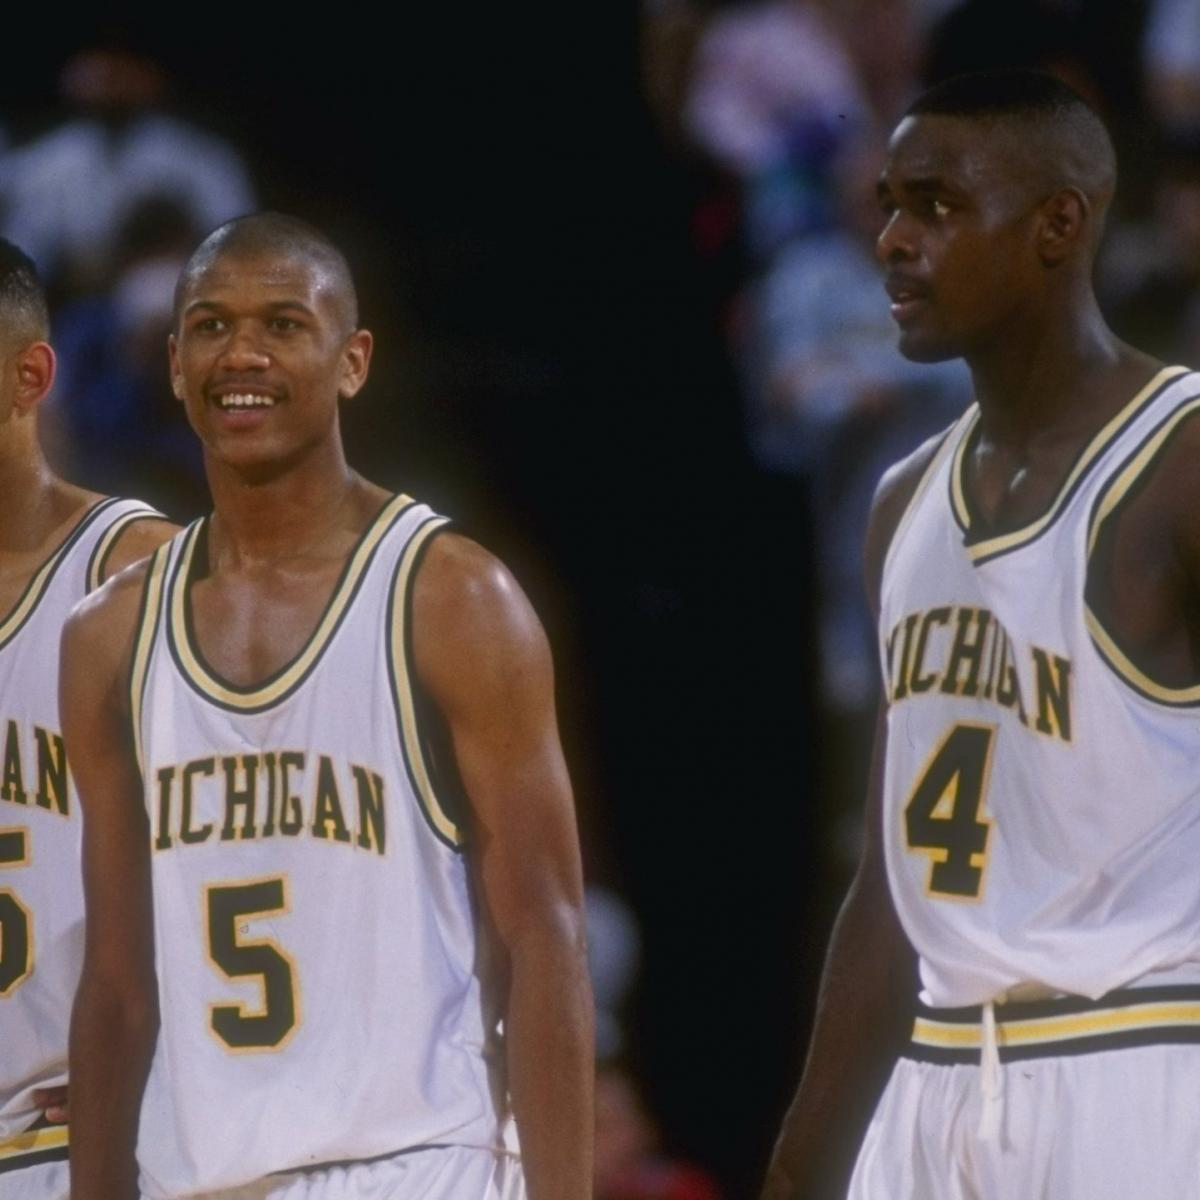 Top Ten Fab Pictures: How Michigan's Fab Five Changed The NBA Forever